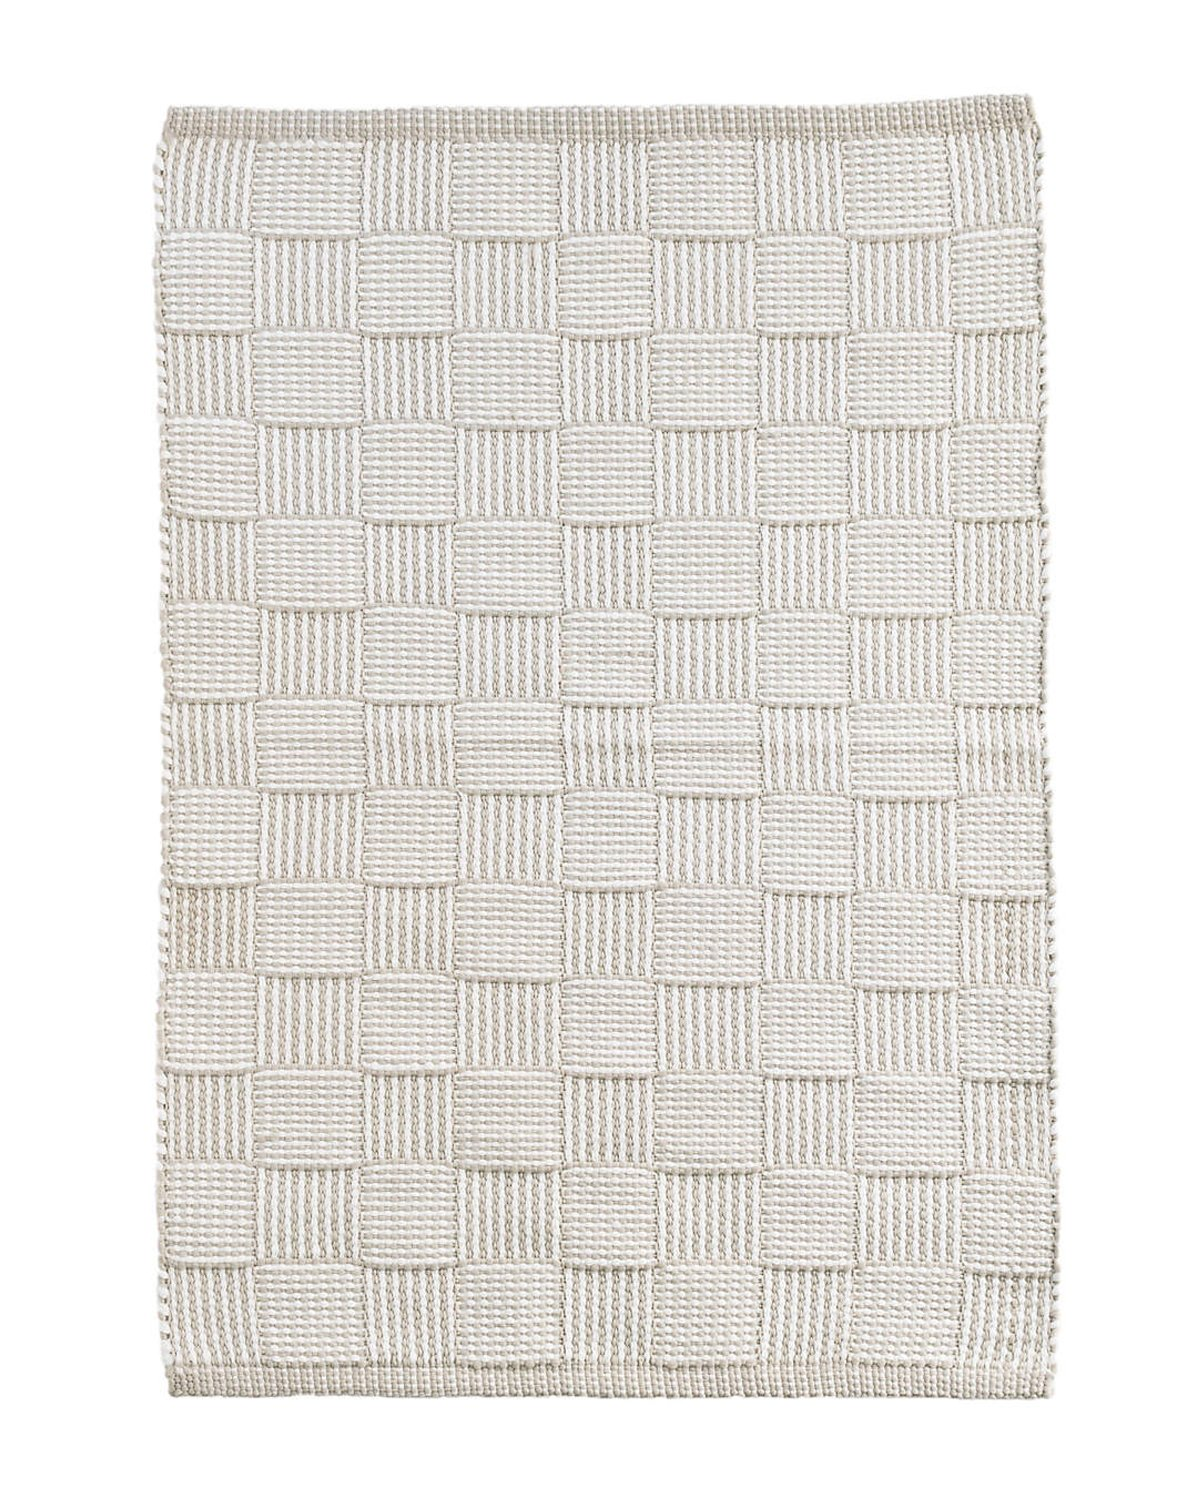 Webber_Indoor_Outdoor_Rug_1.jpg